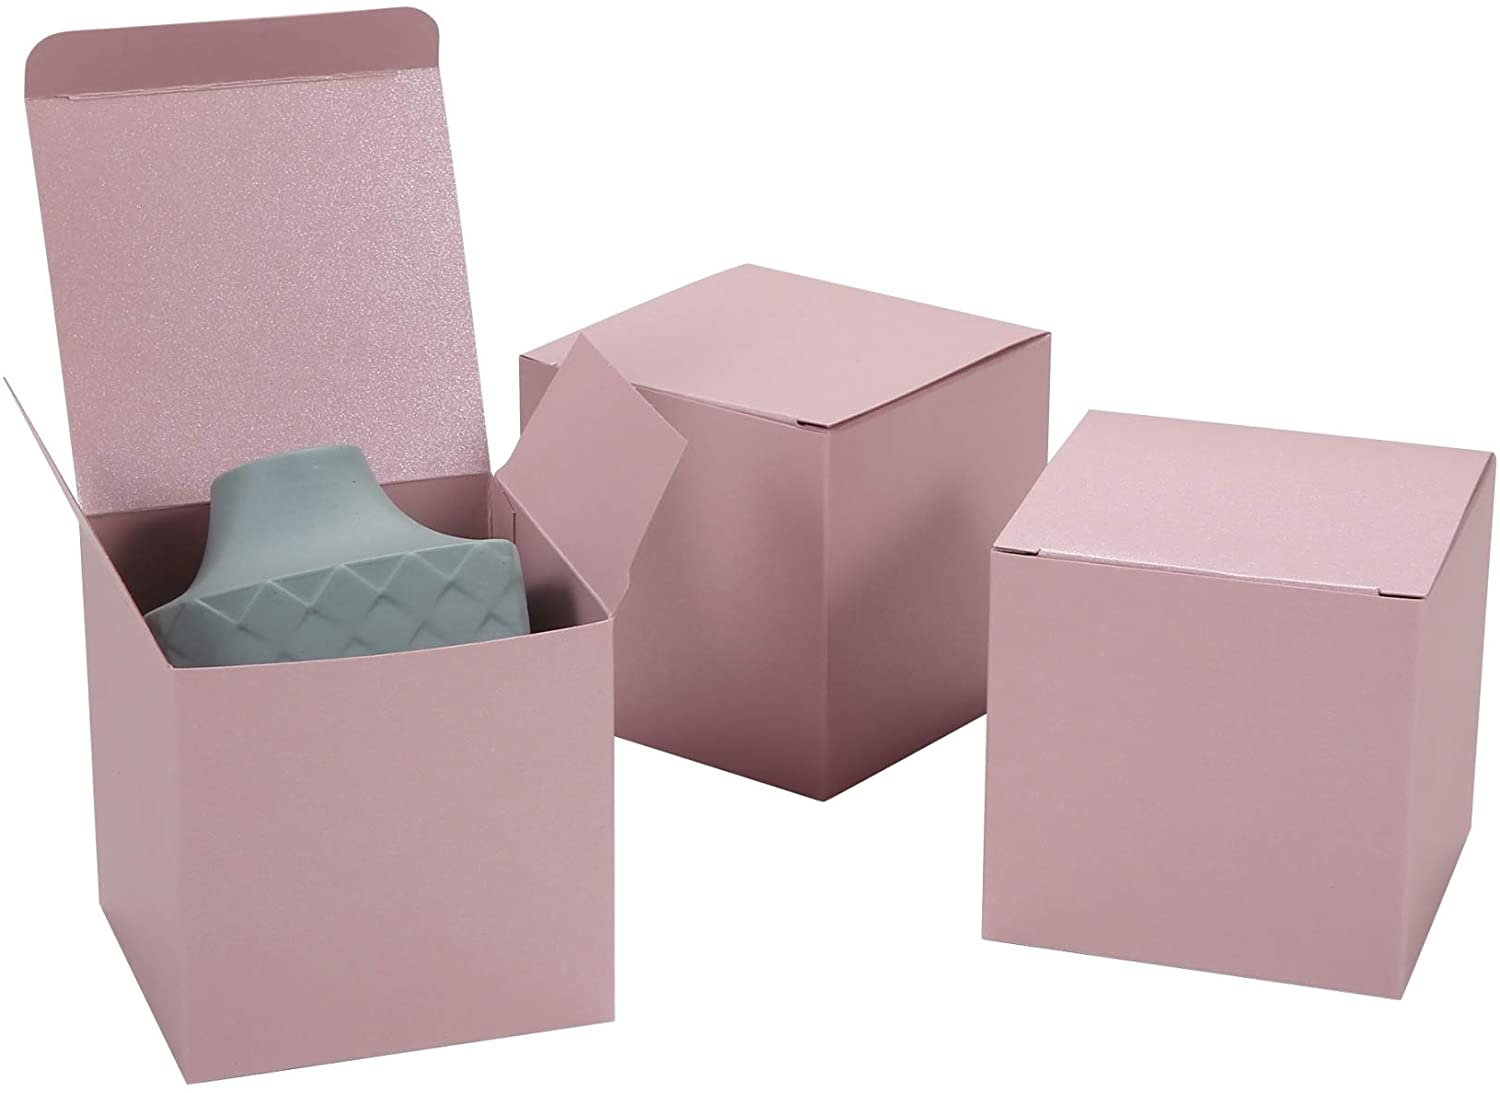 20ct Glitter Pink Paper Gift Boxes with Lids 3x3x3 inch - Vintage Pearlescent Paper Favor Boxes for Crafting Candy Cookie Cupcake Wedding Birthday Holiday Baby Shower (Pink)